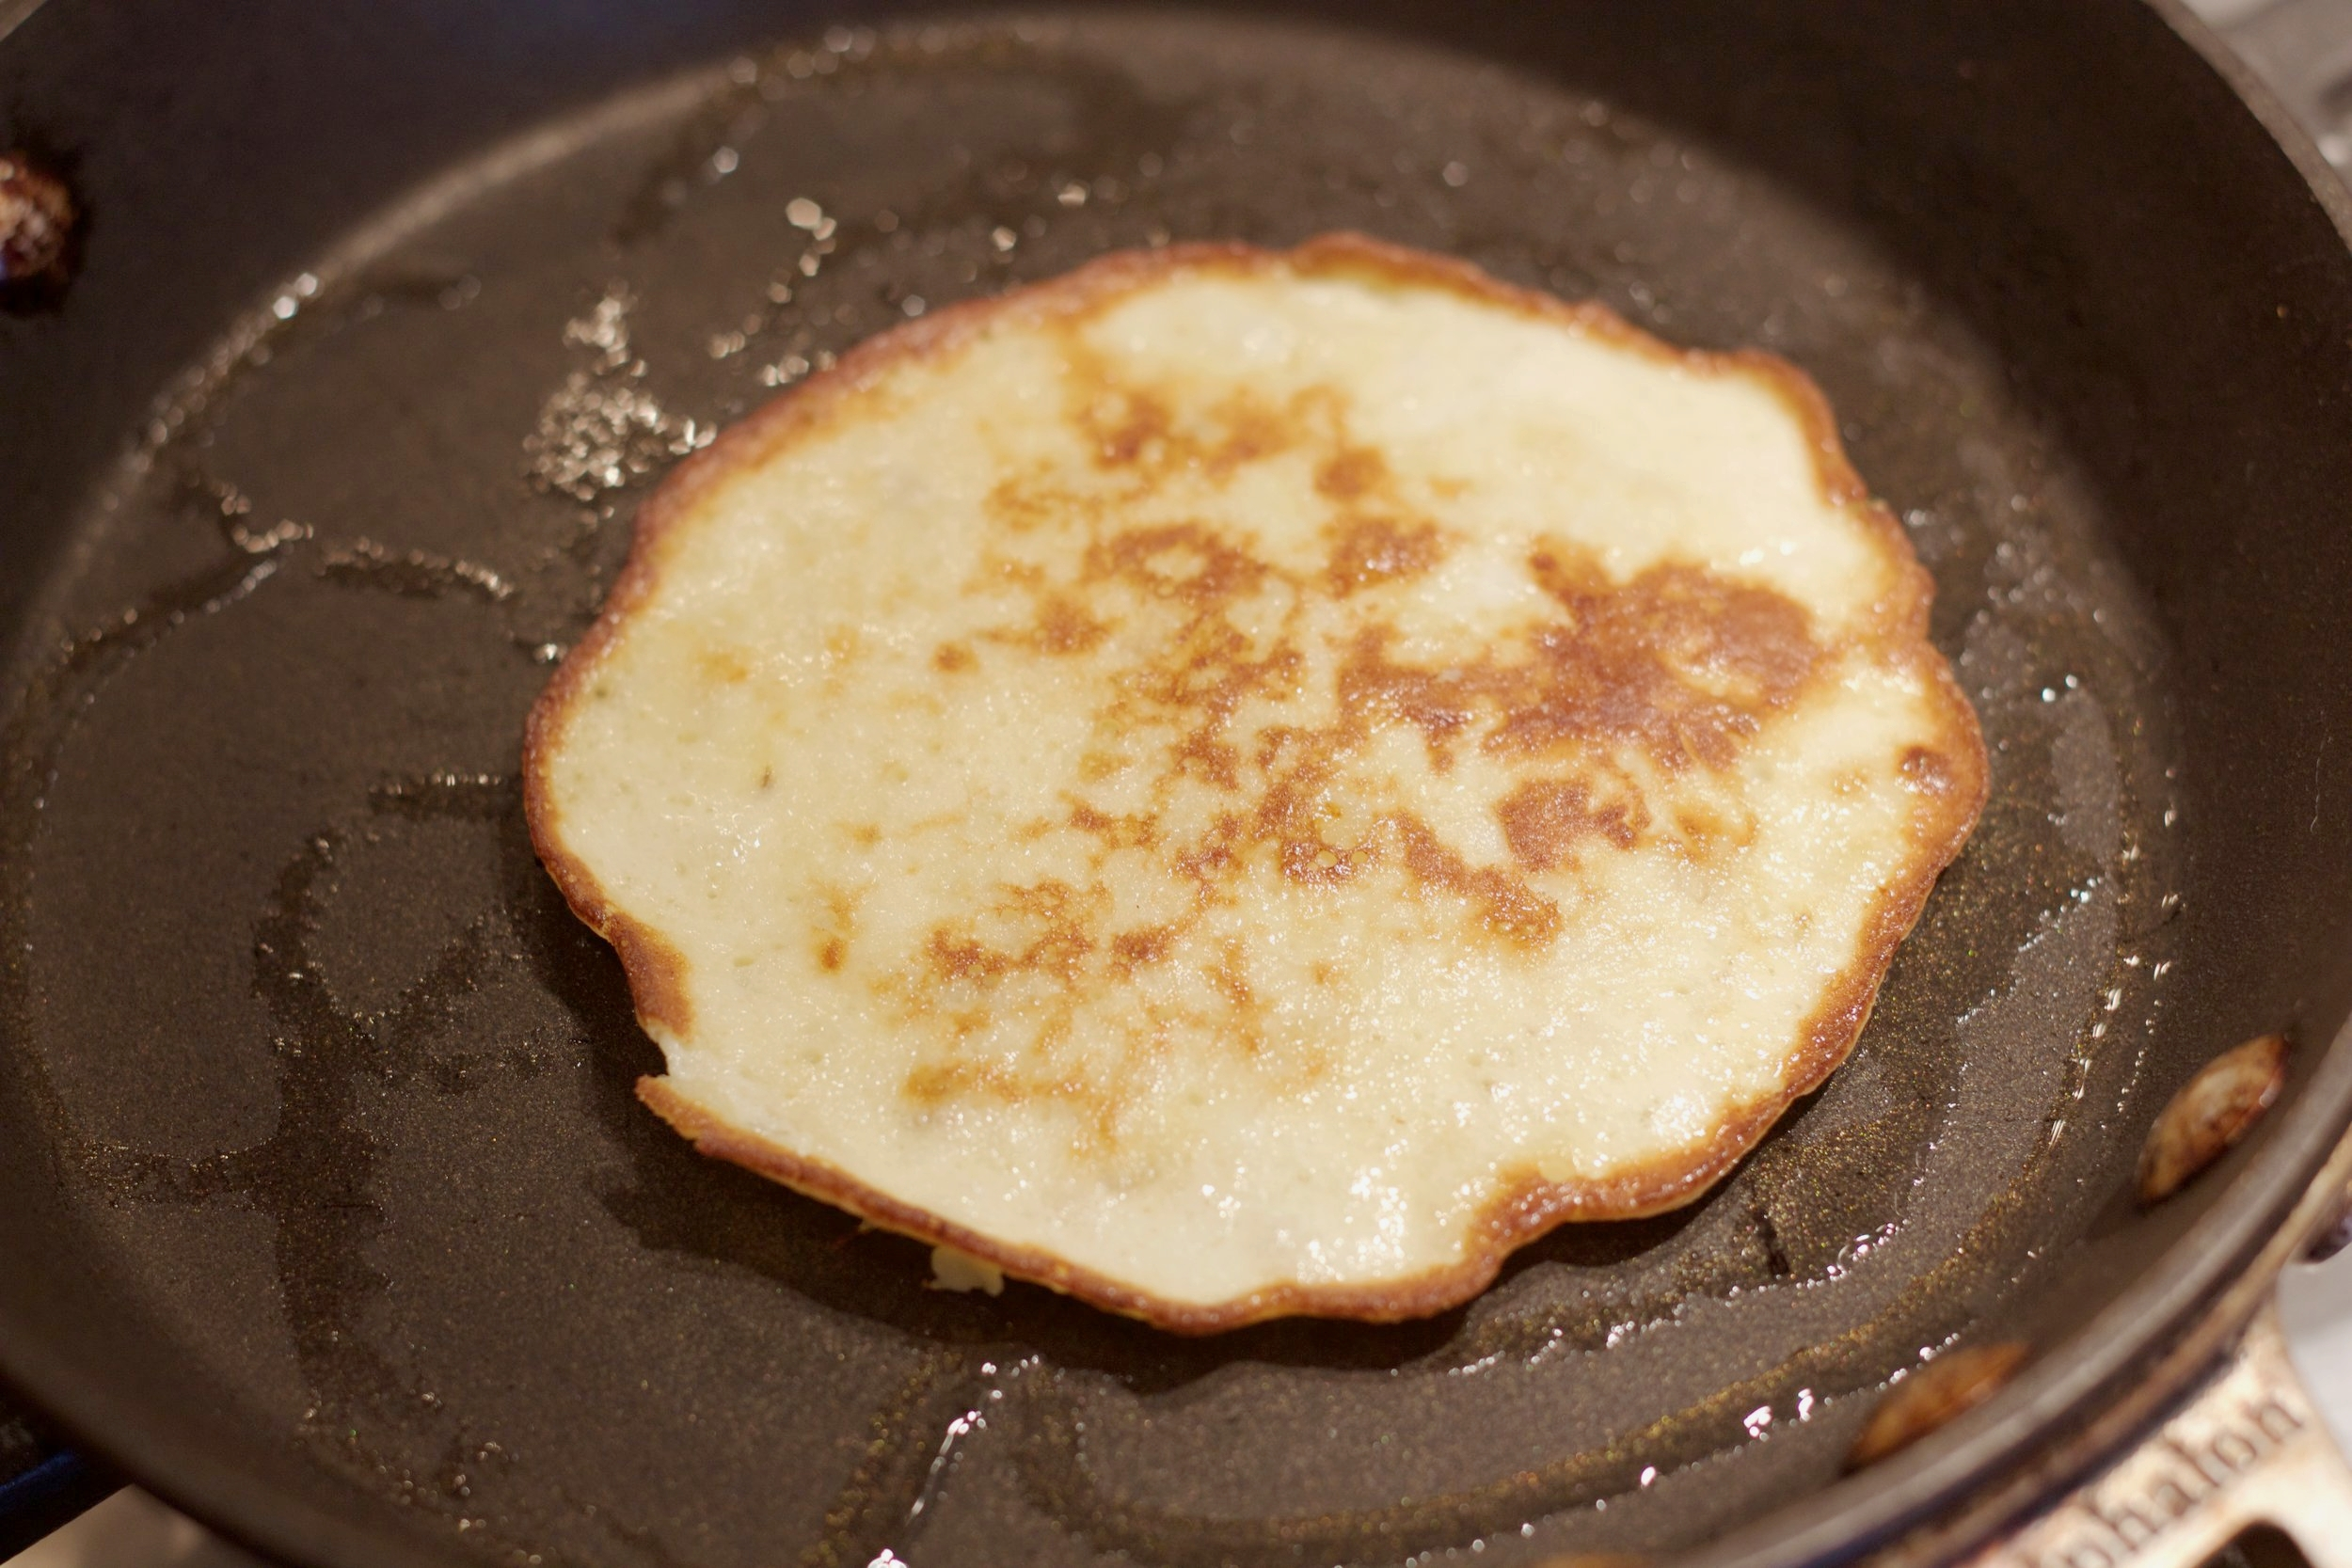 Cook for roughly 30 seconds on each side. The pancake should turn a golden brown color.